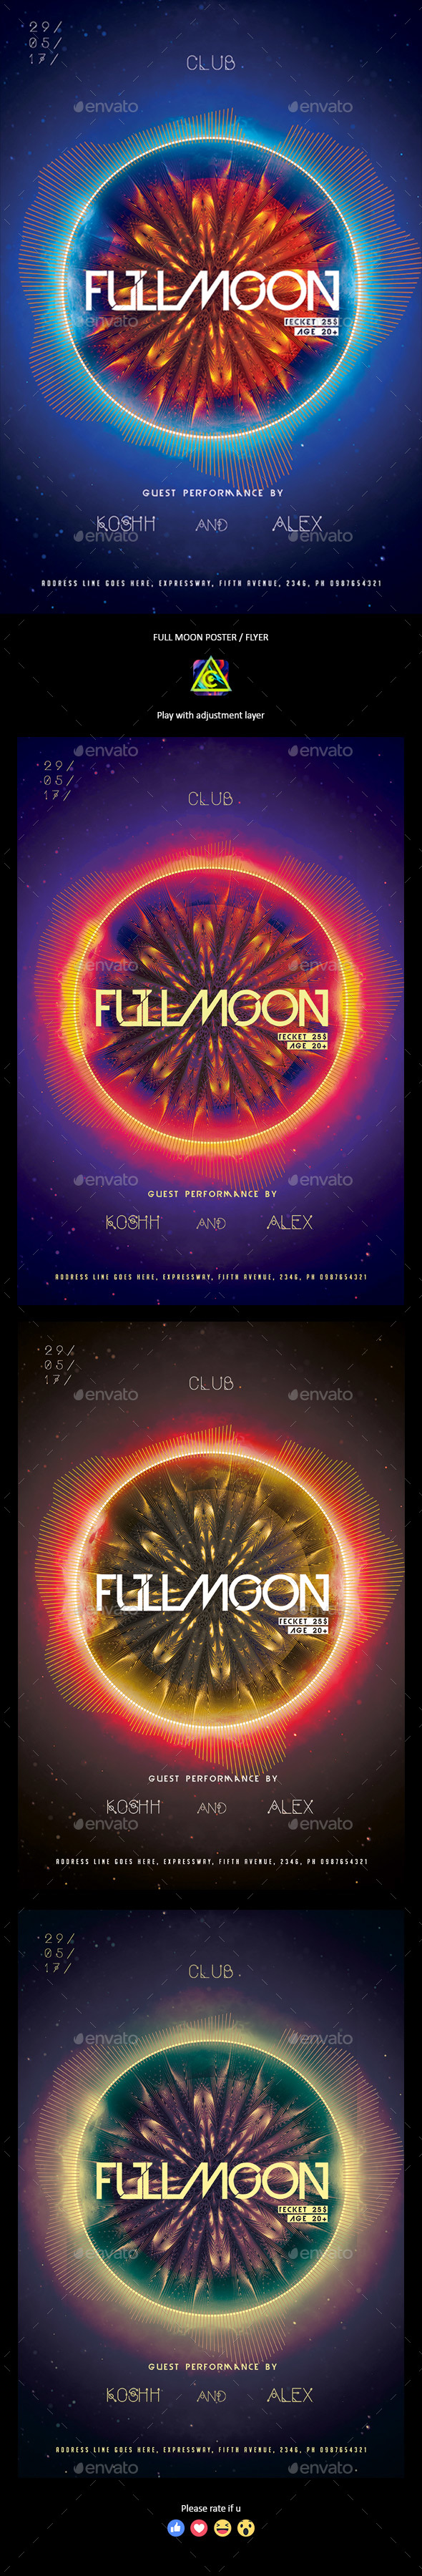 Full Moon Poster / Flyer - Clubs & Parties Events